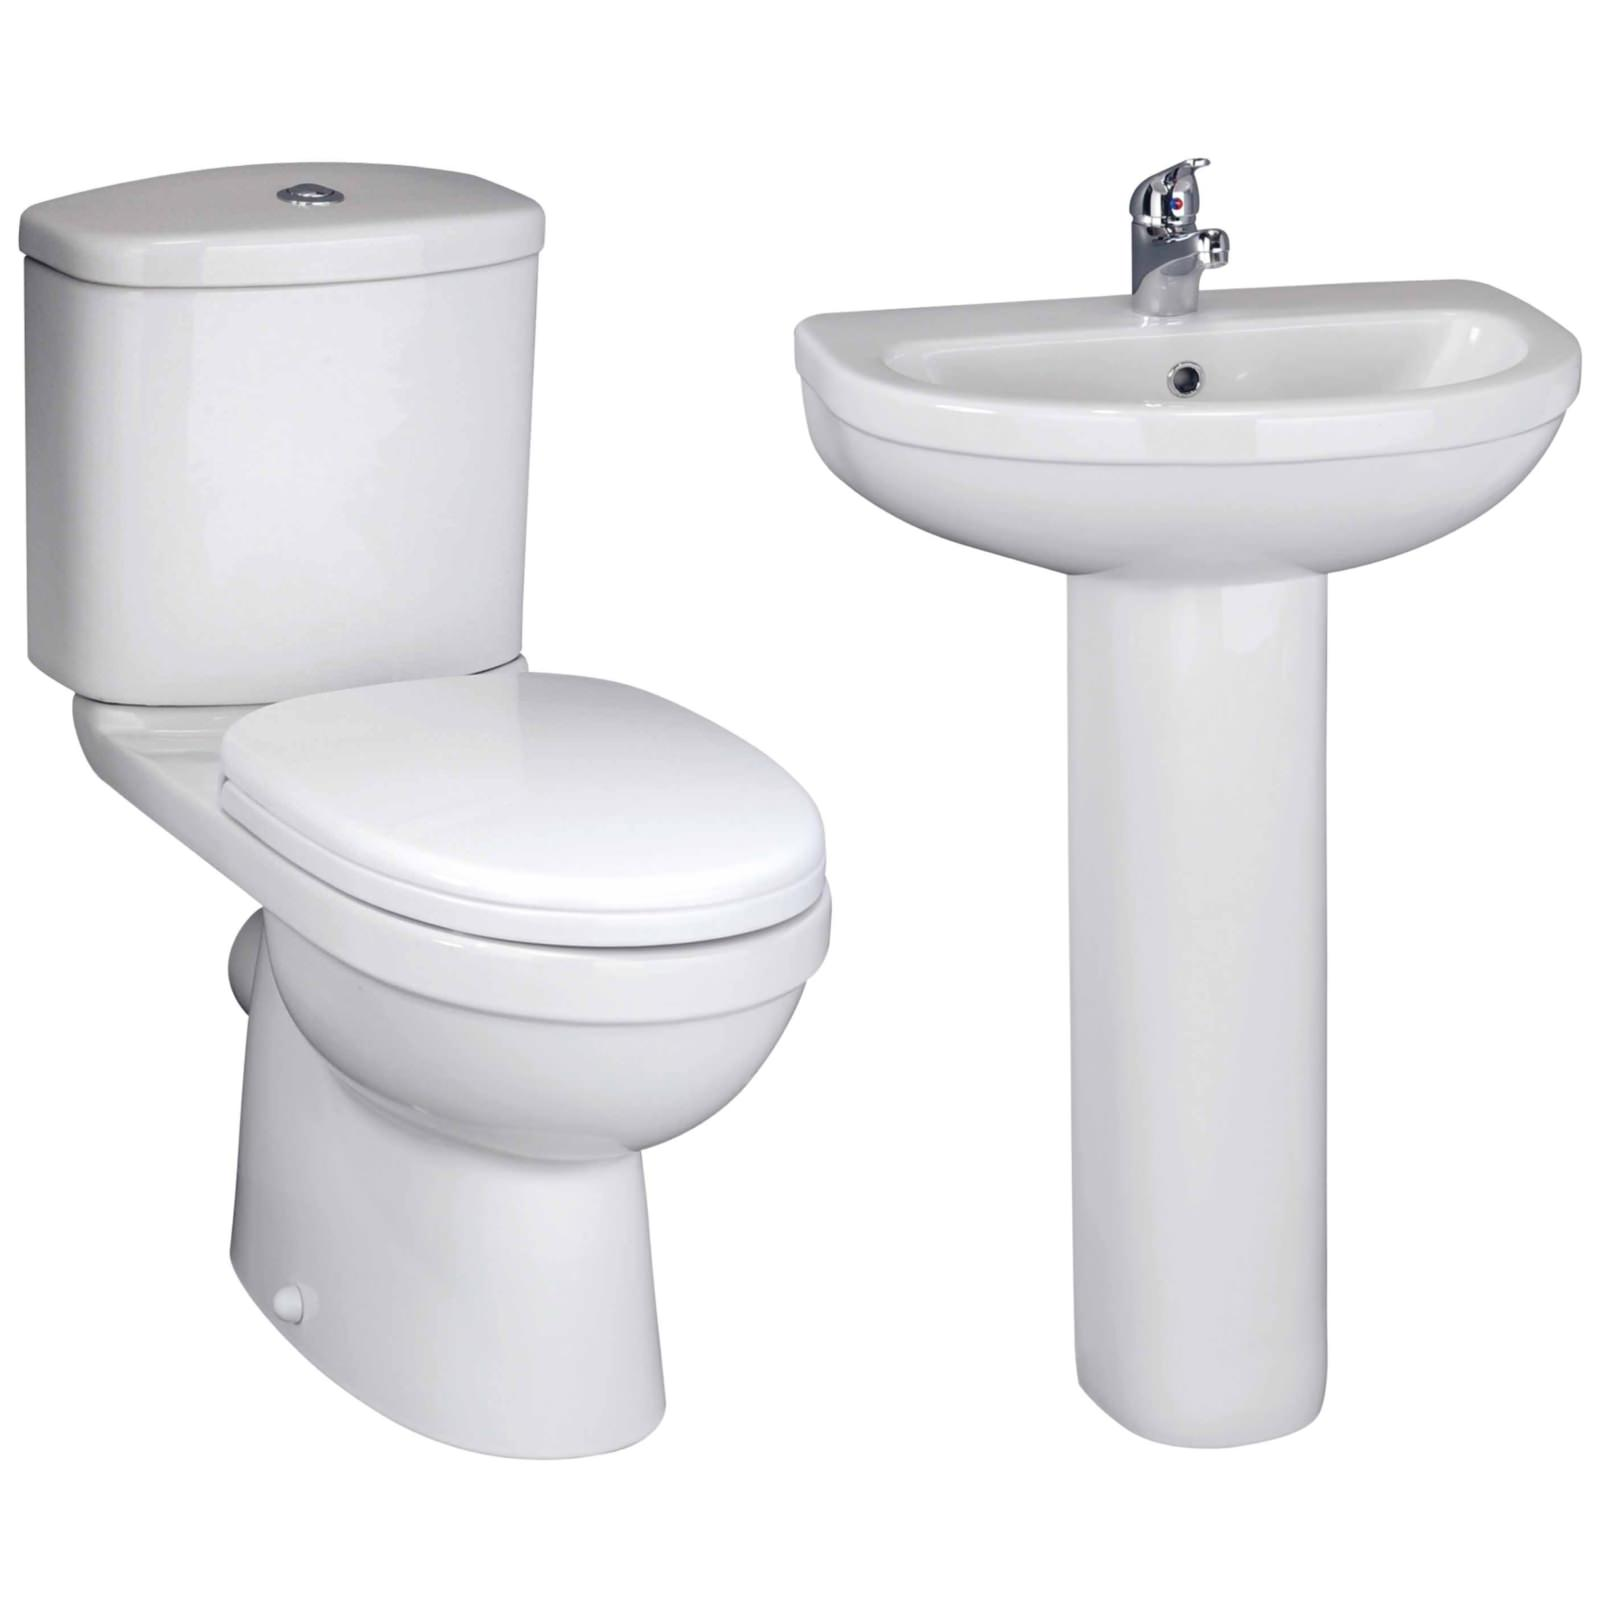 Premier Ivo Basin And Toilet Set - NCS250